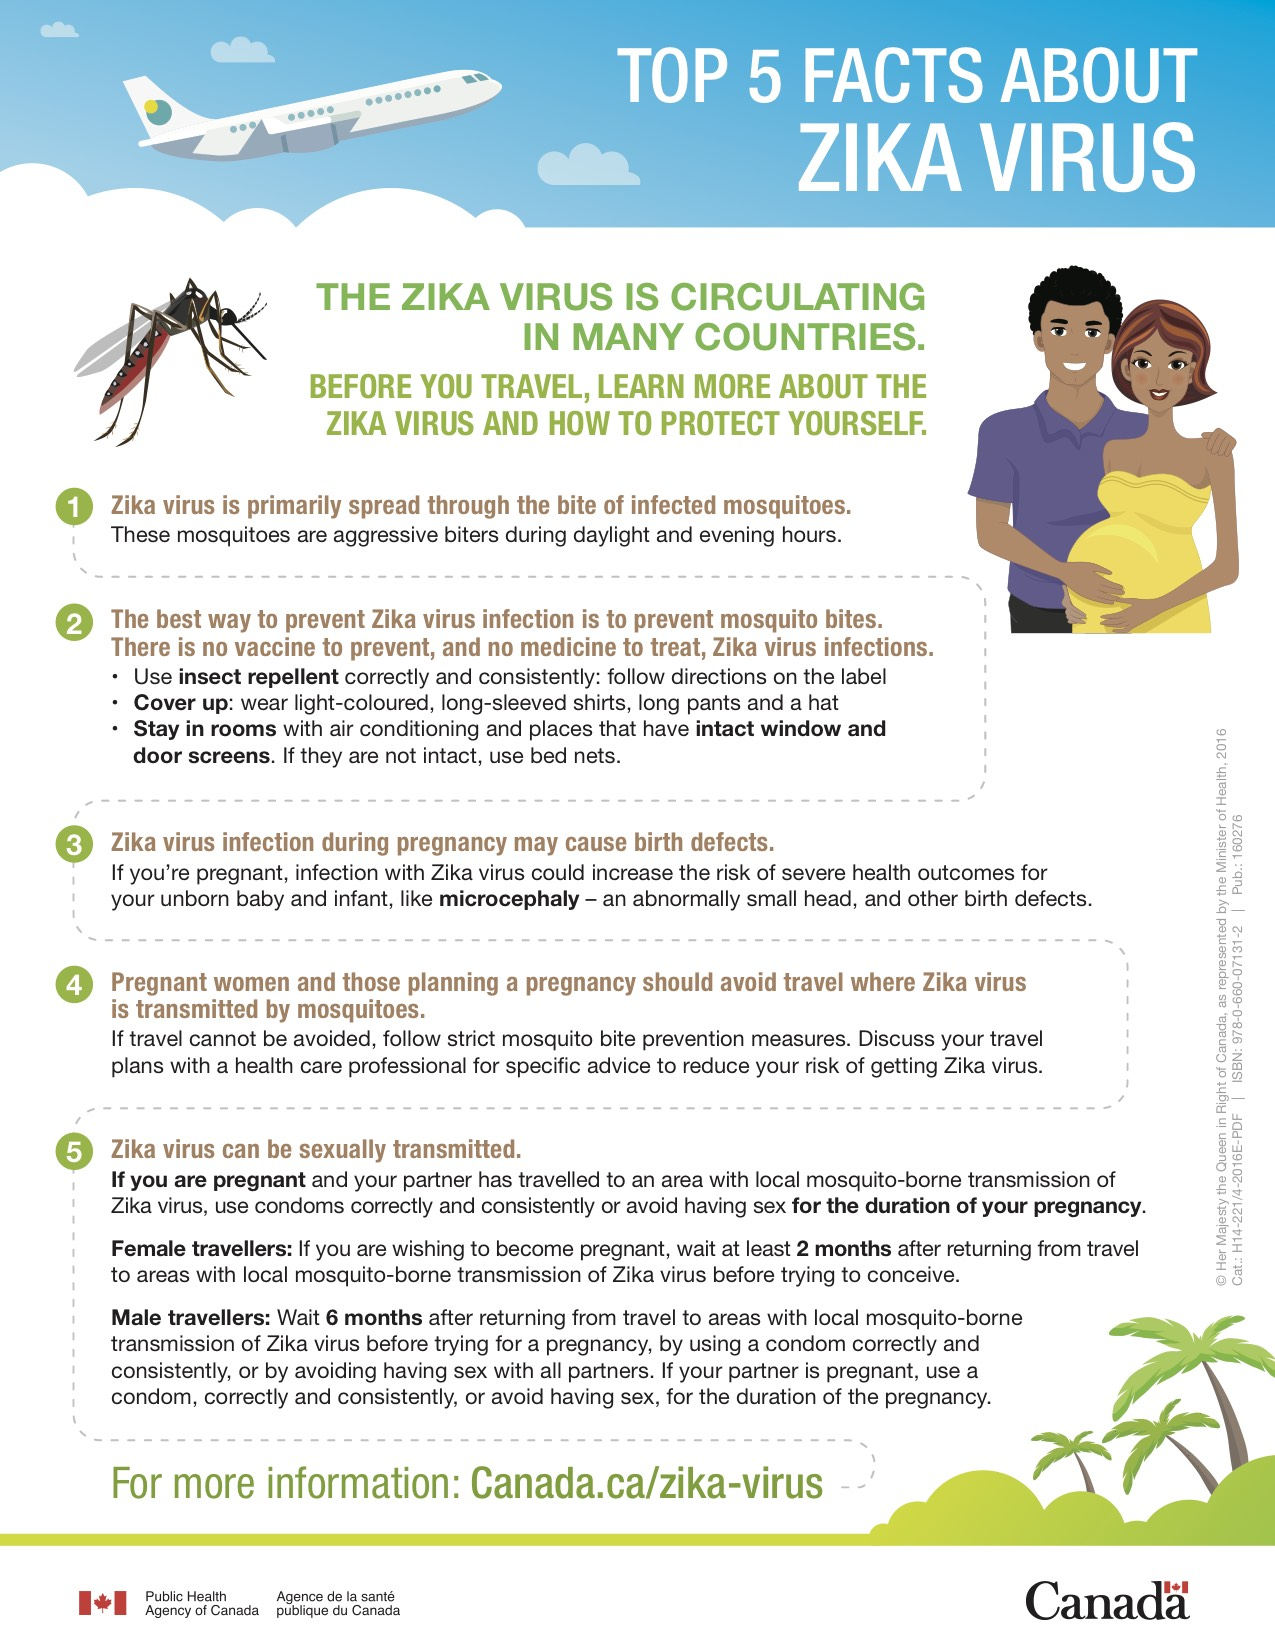 Useful facts about Zika Virus and your warm winter getaway...